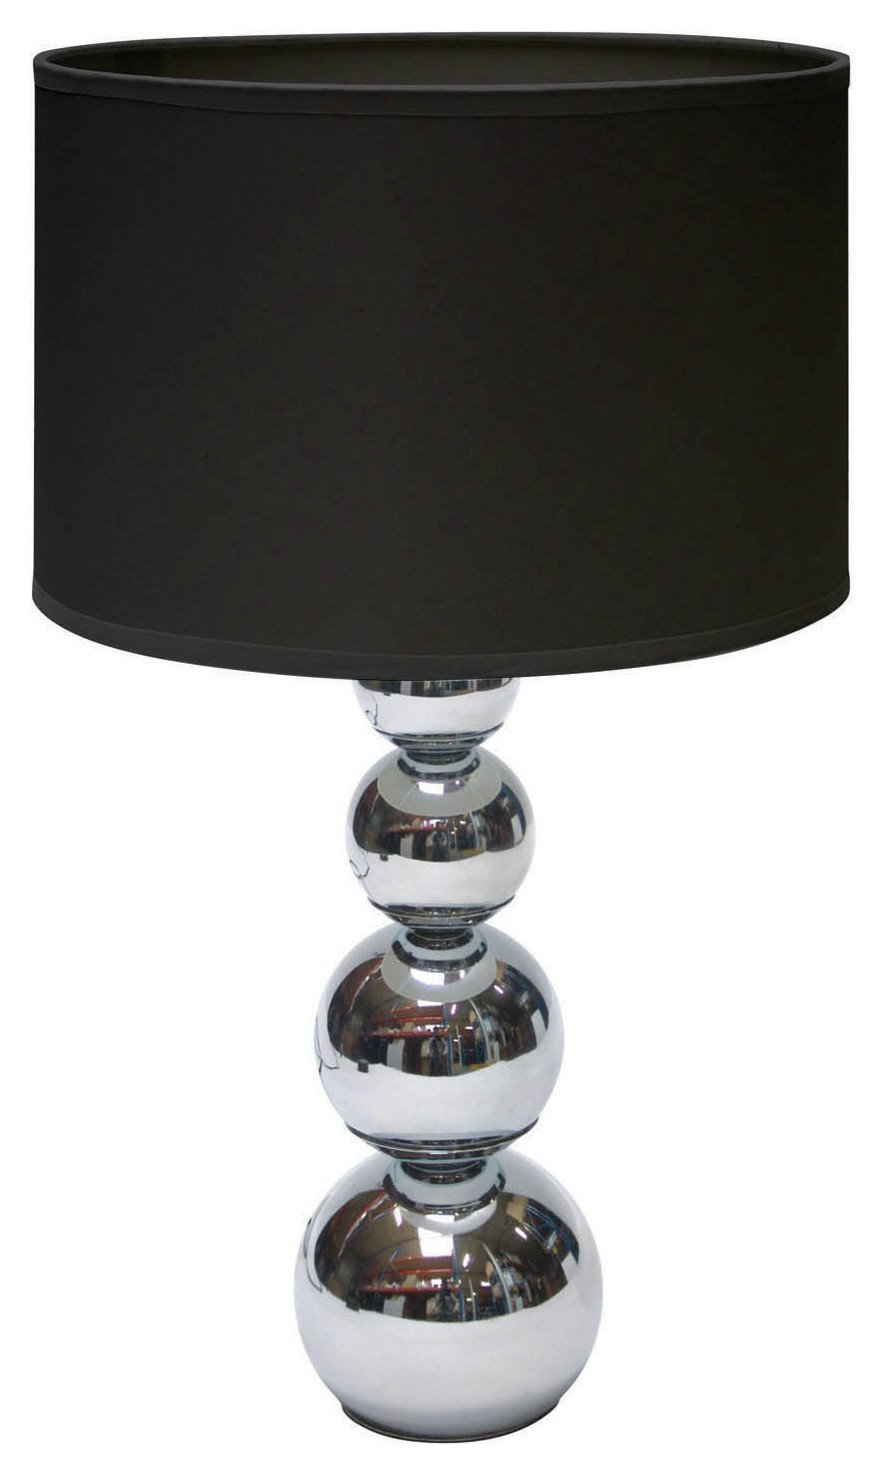 Cameo Touch Table Lamp - Chrome & Black